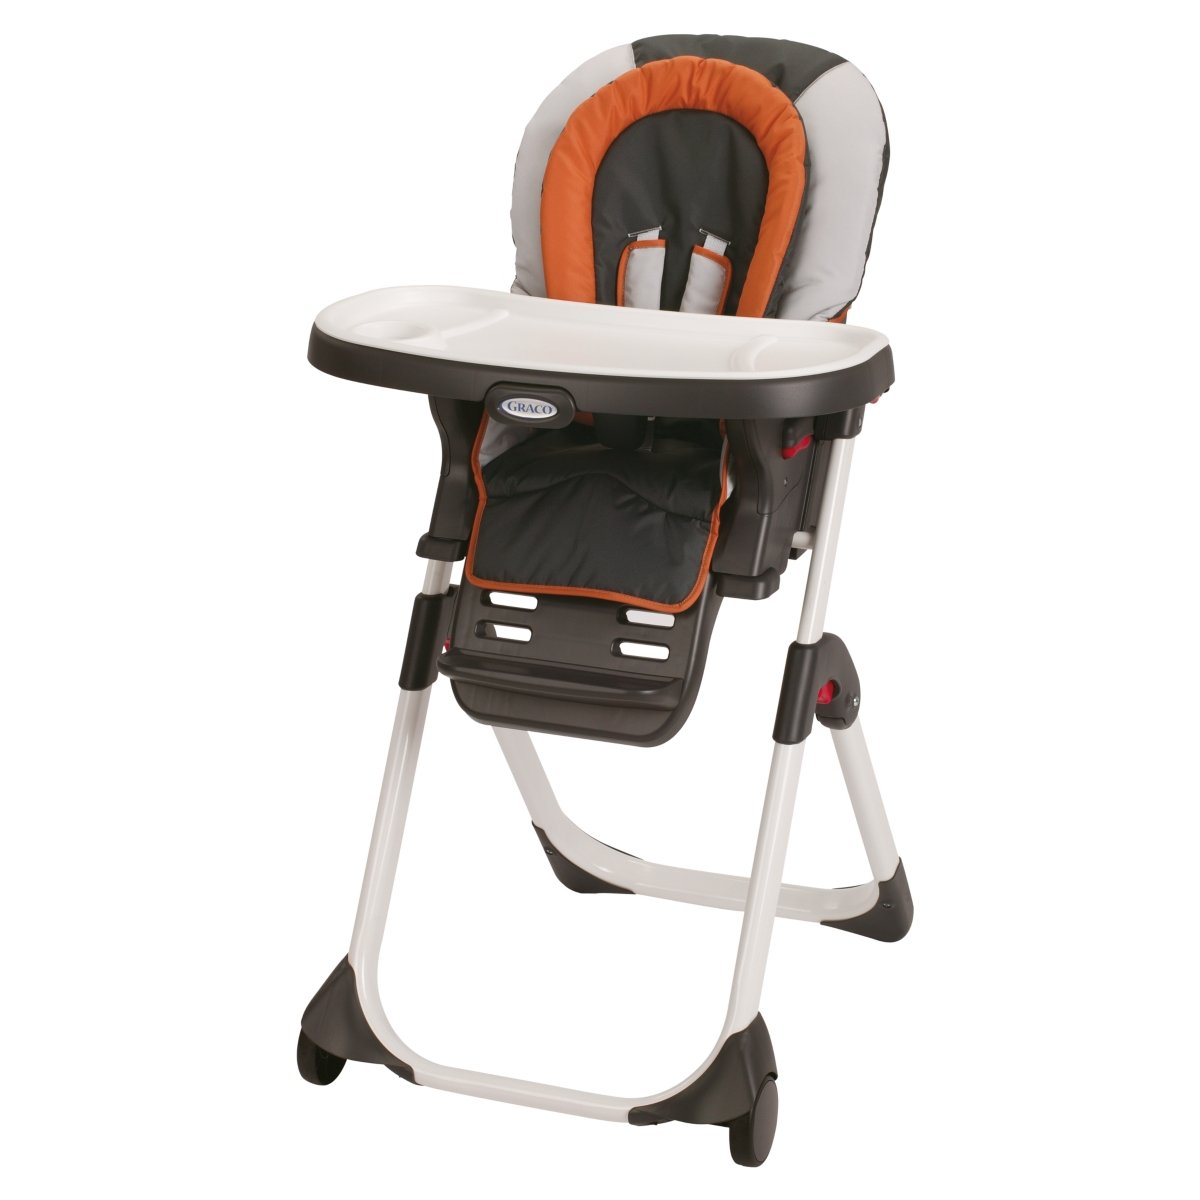 Graco DuoDiner LX Highchair, Tangerine $100.00